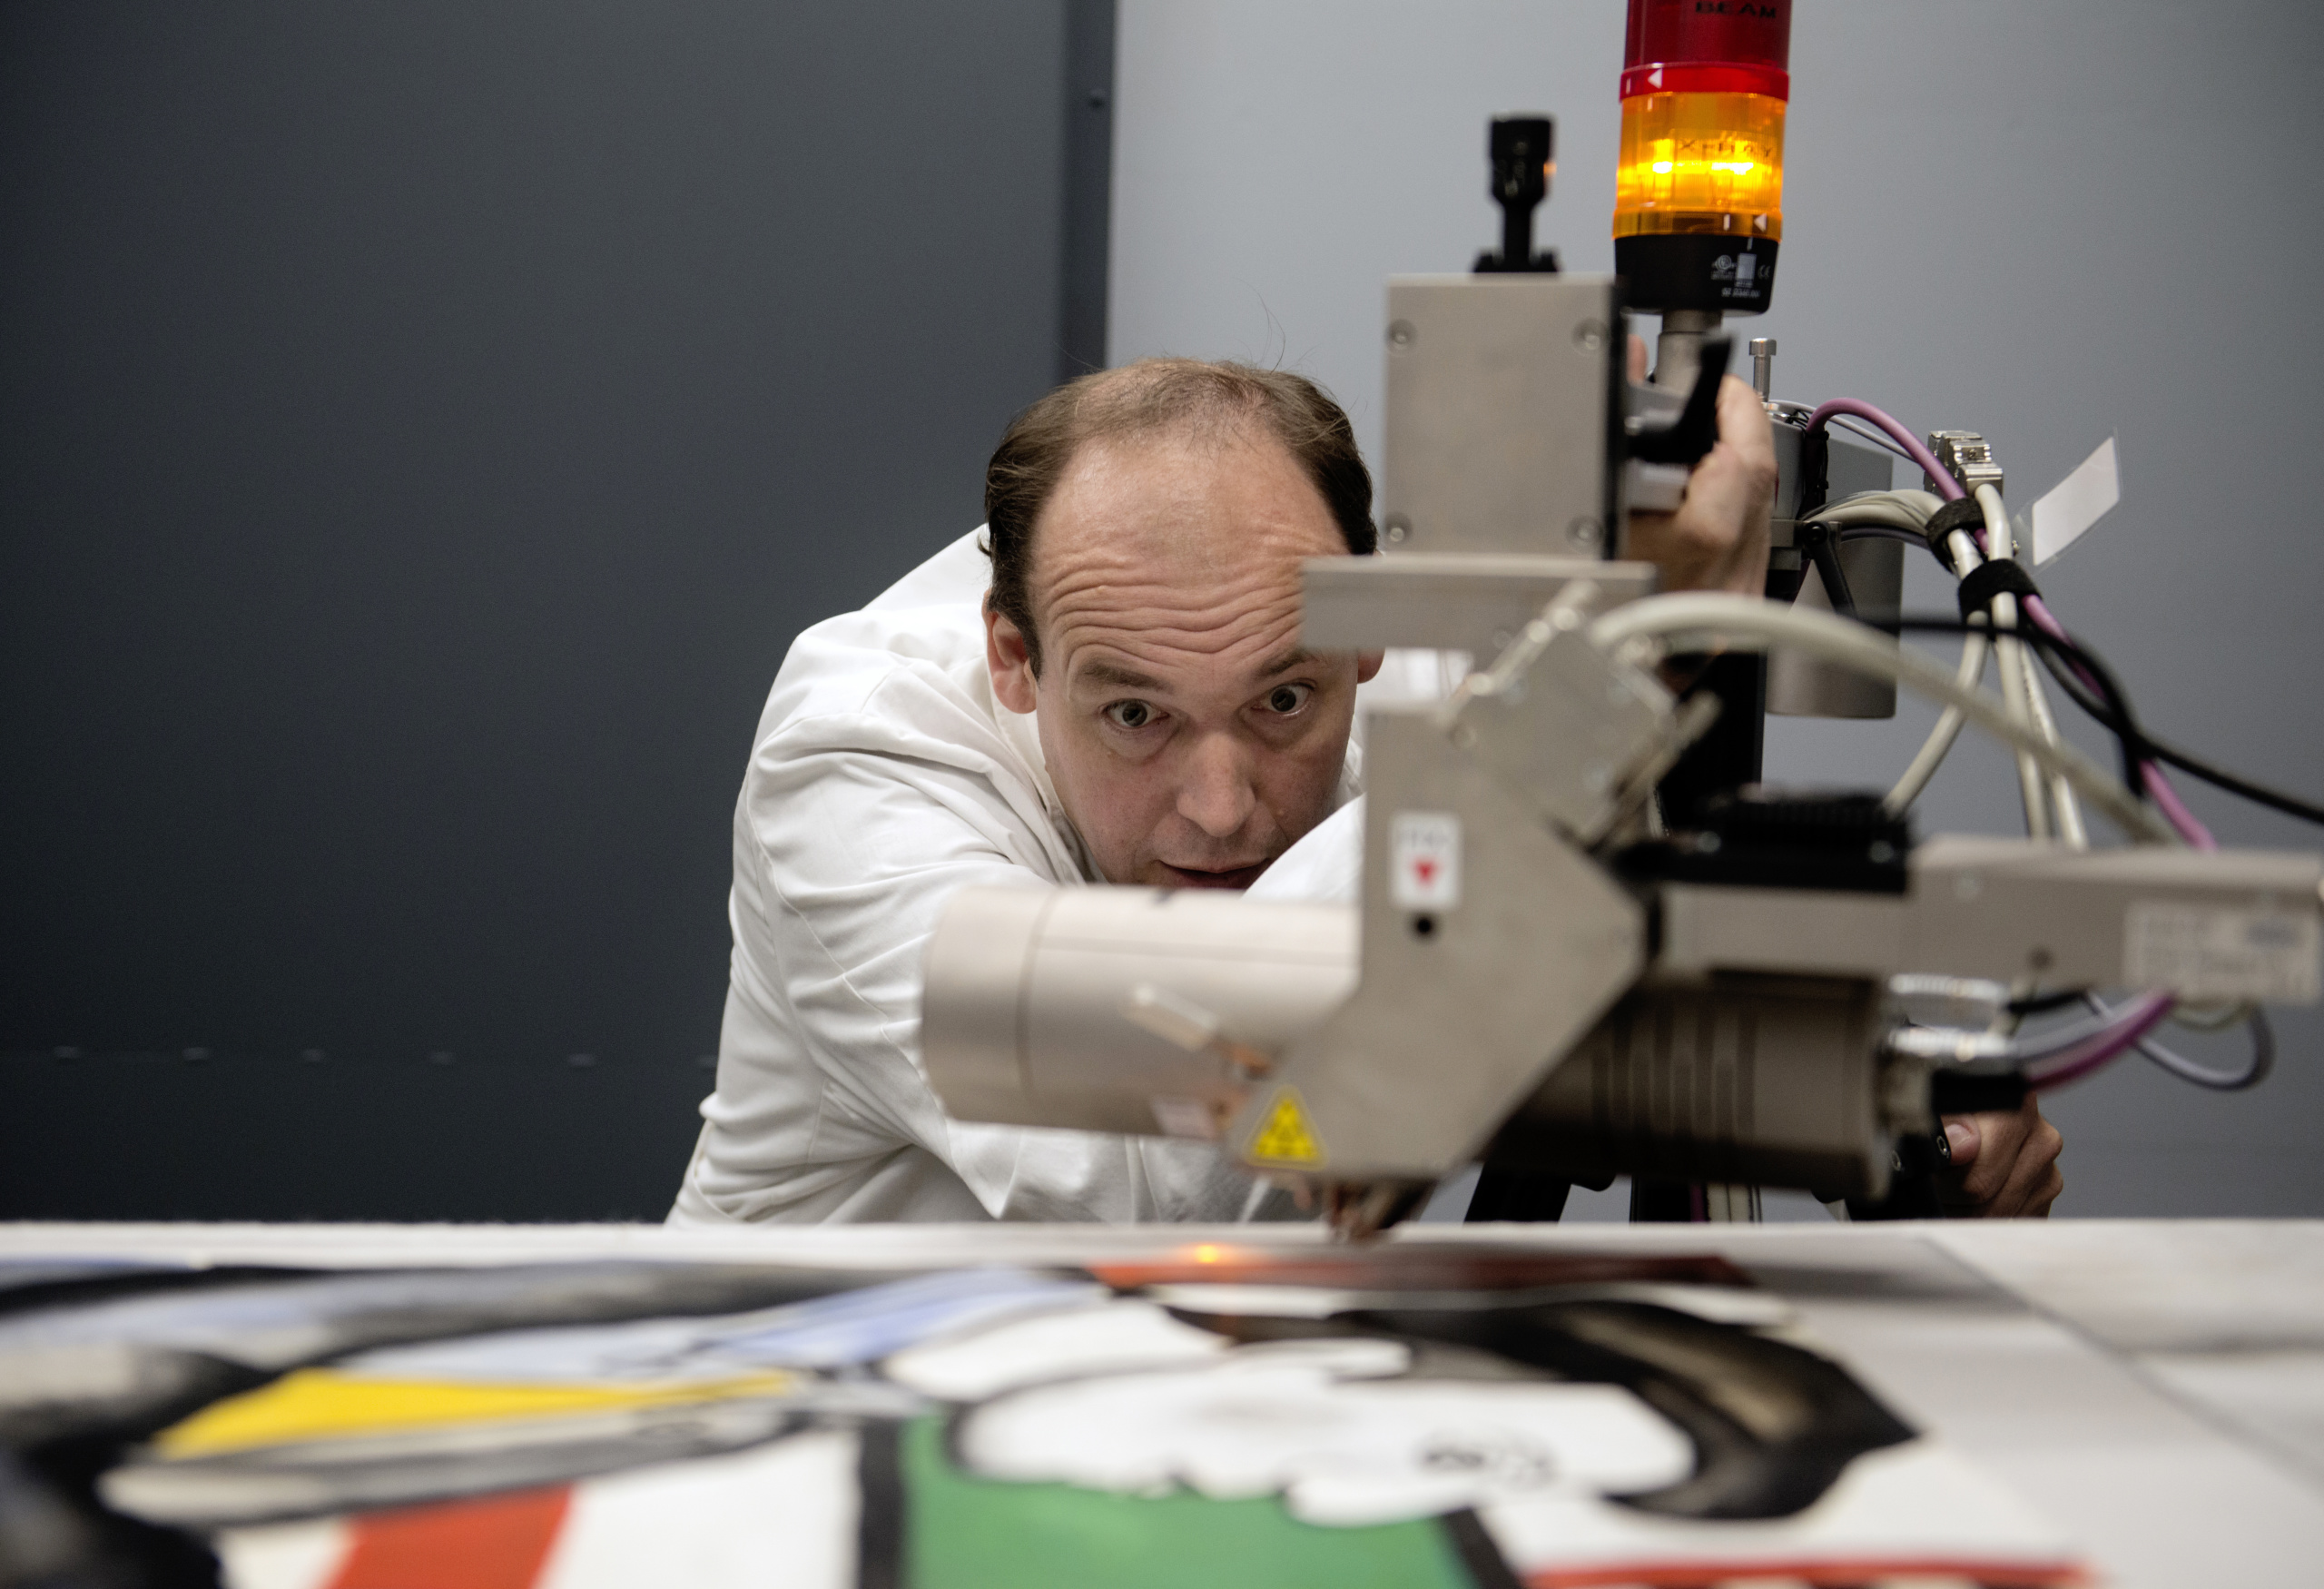 Dr. Killian Anheuser, head scientist at the Fine Arts Experts Institute (FAEI), analyses a bold-coloured painting purportedly by French master Fernand Leger, searching for signs of forgery, on September 19, 2014 in Geneva. AFP PHOTO / RICHARD JUILLIART (Photo credit should read Richard Juilliart/AFP/Getty Images)